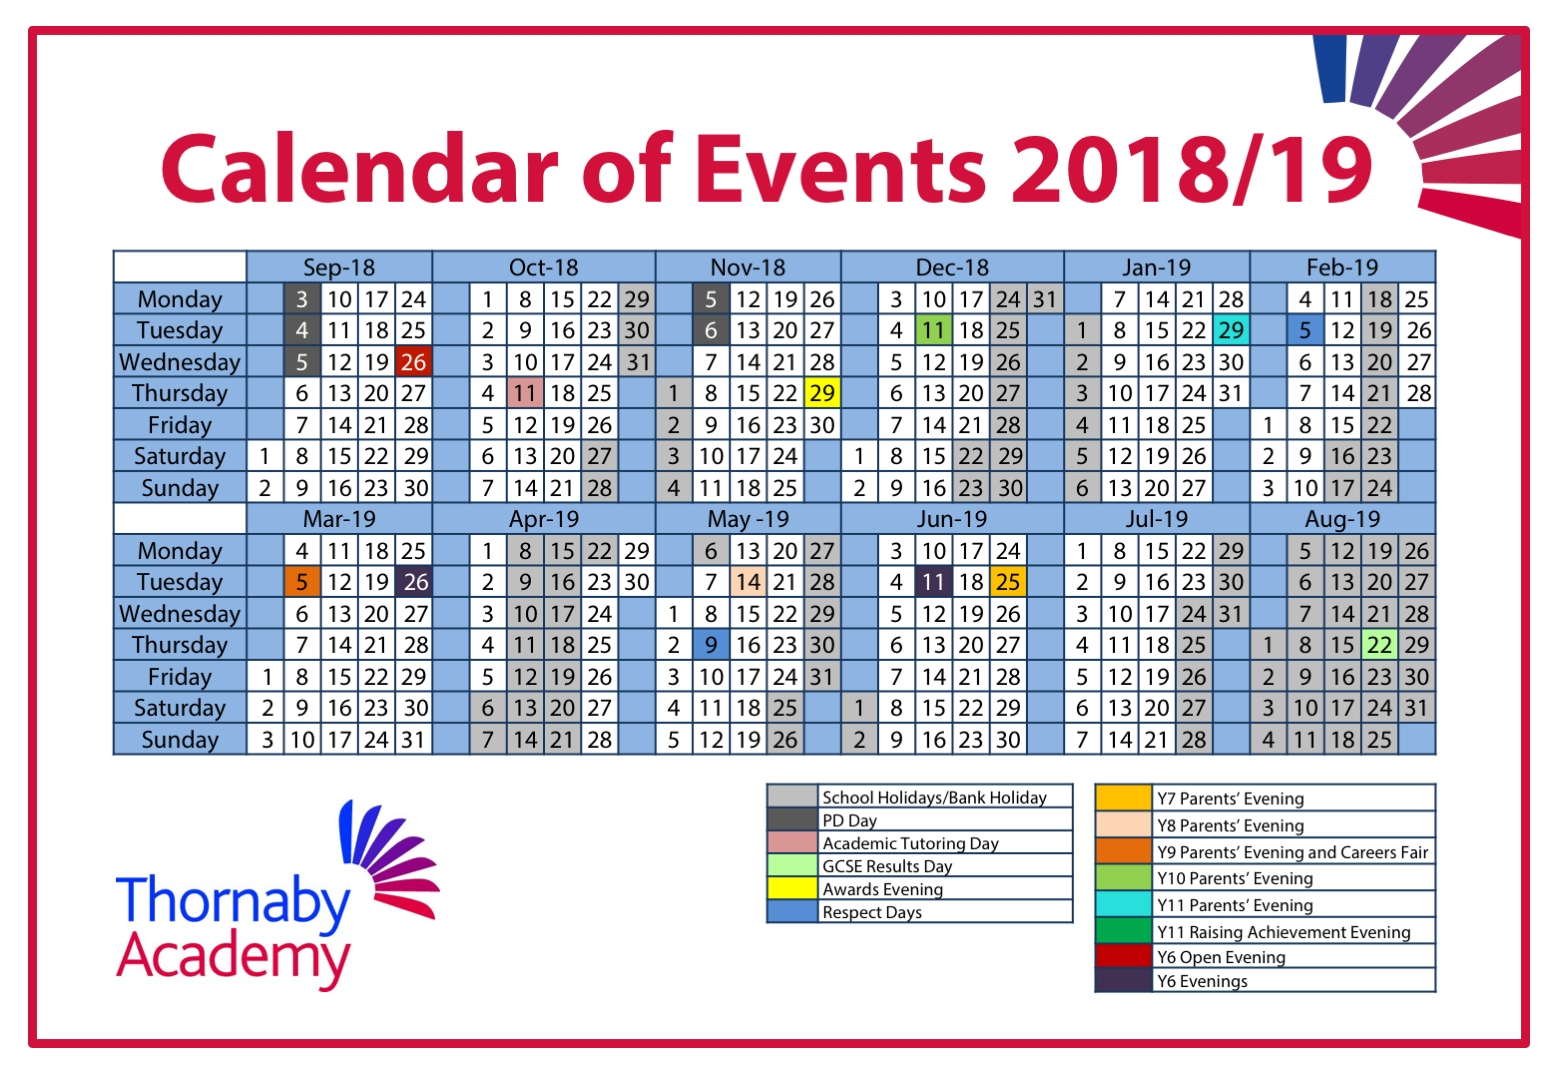 Calendar – Thornaby Academy regarding School Calendar For Pshe Events 2019-2020